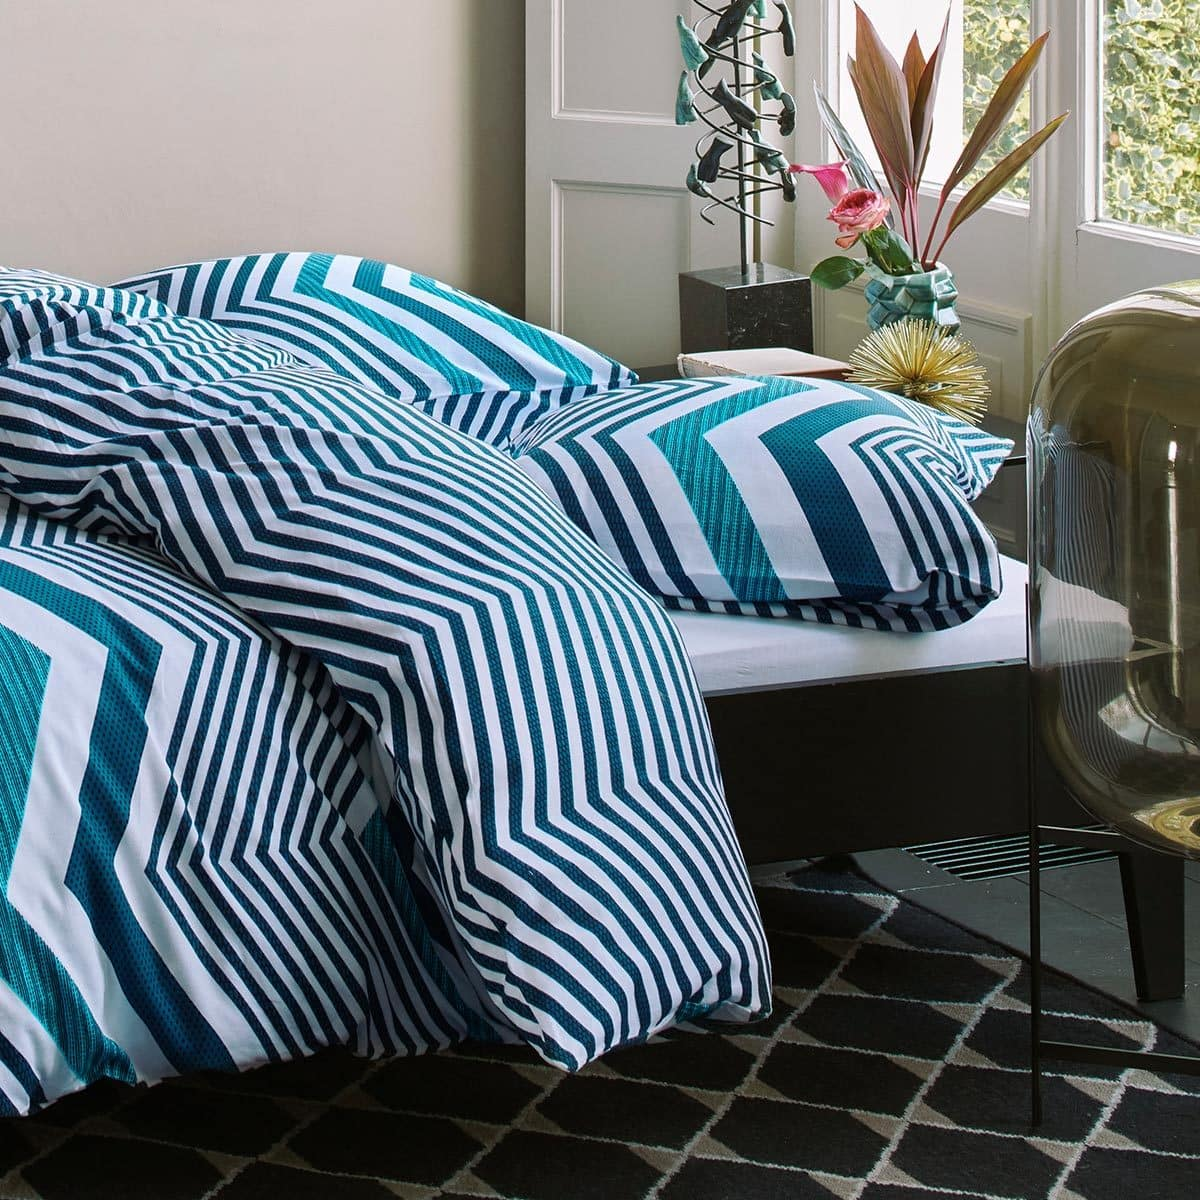 esprit flanell bettw sche ziggy zag aqua g nstig online kaufen bei bettwaren shop. Black Bedroom Furniture Sets. Home Design Ideas